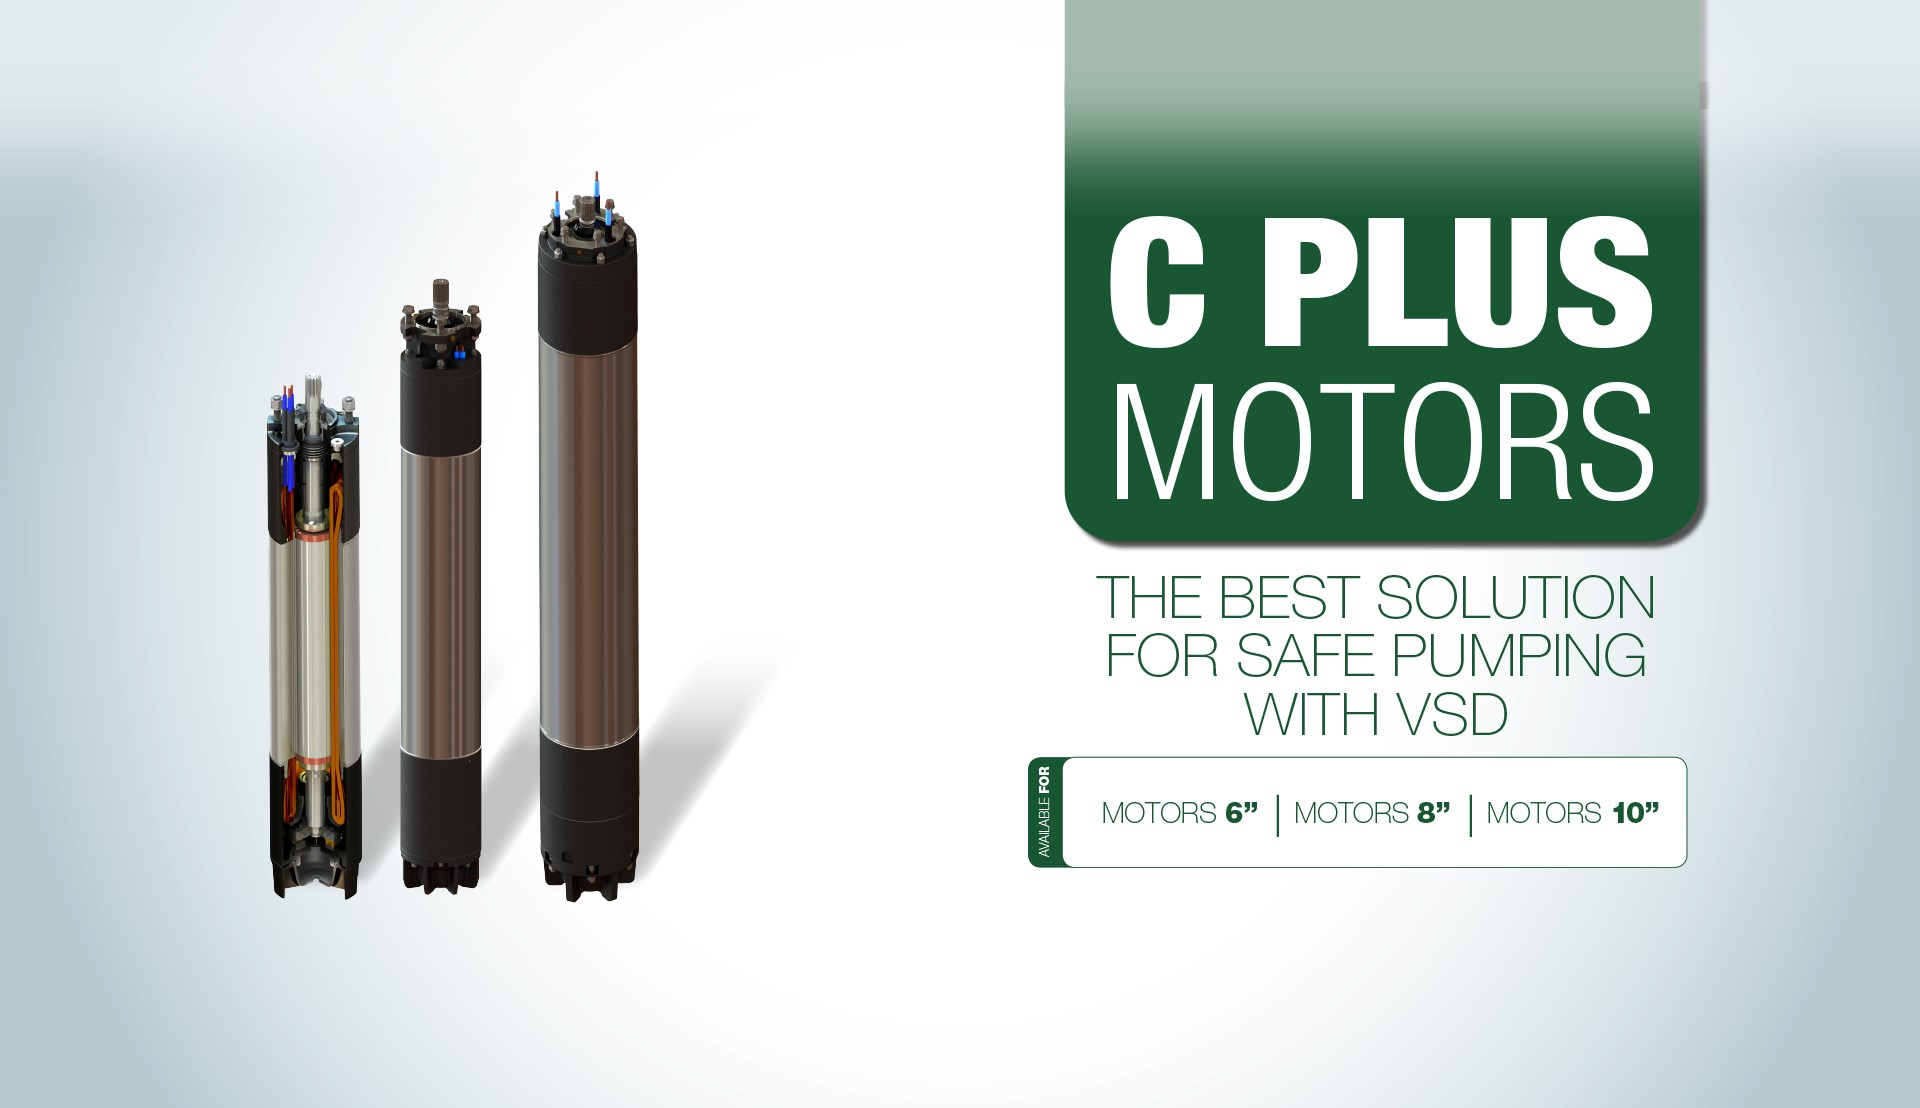 C PLUS: THE BEST SOLUTION